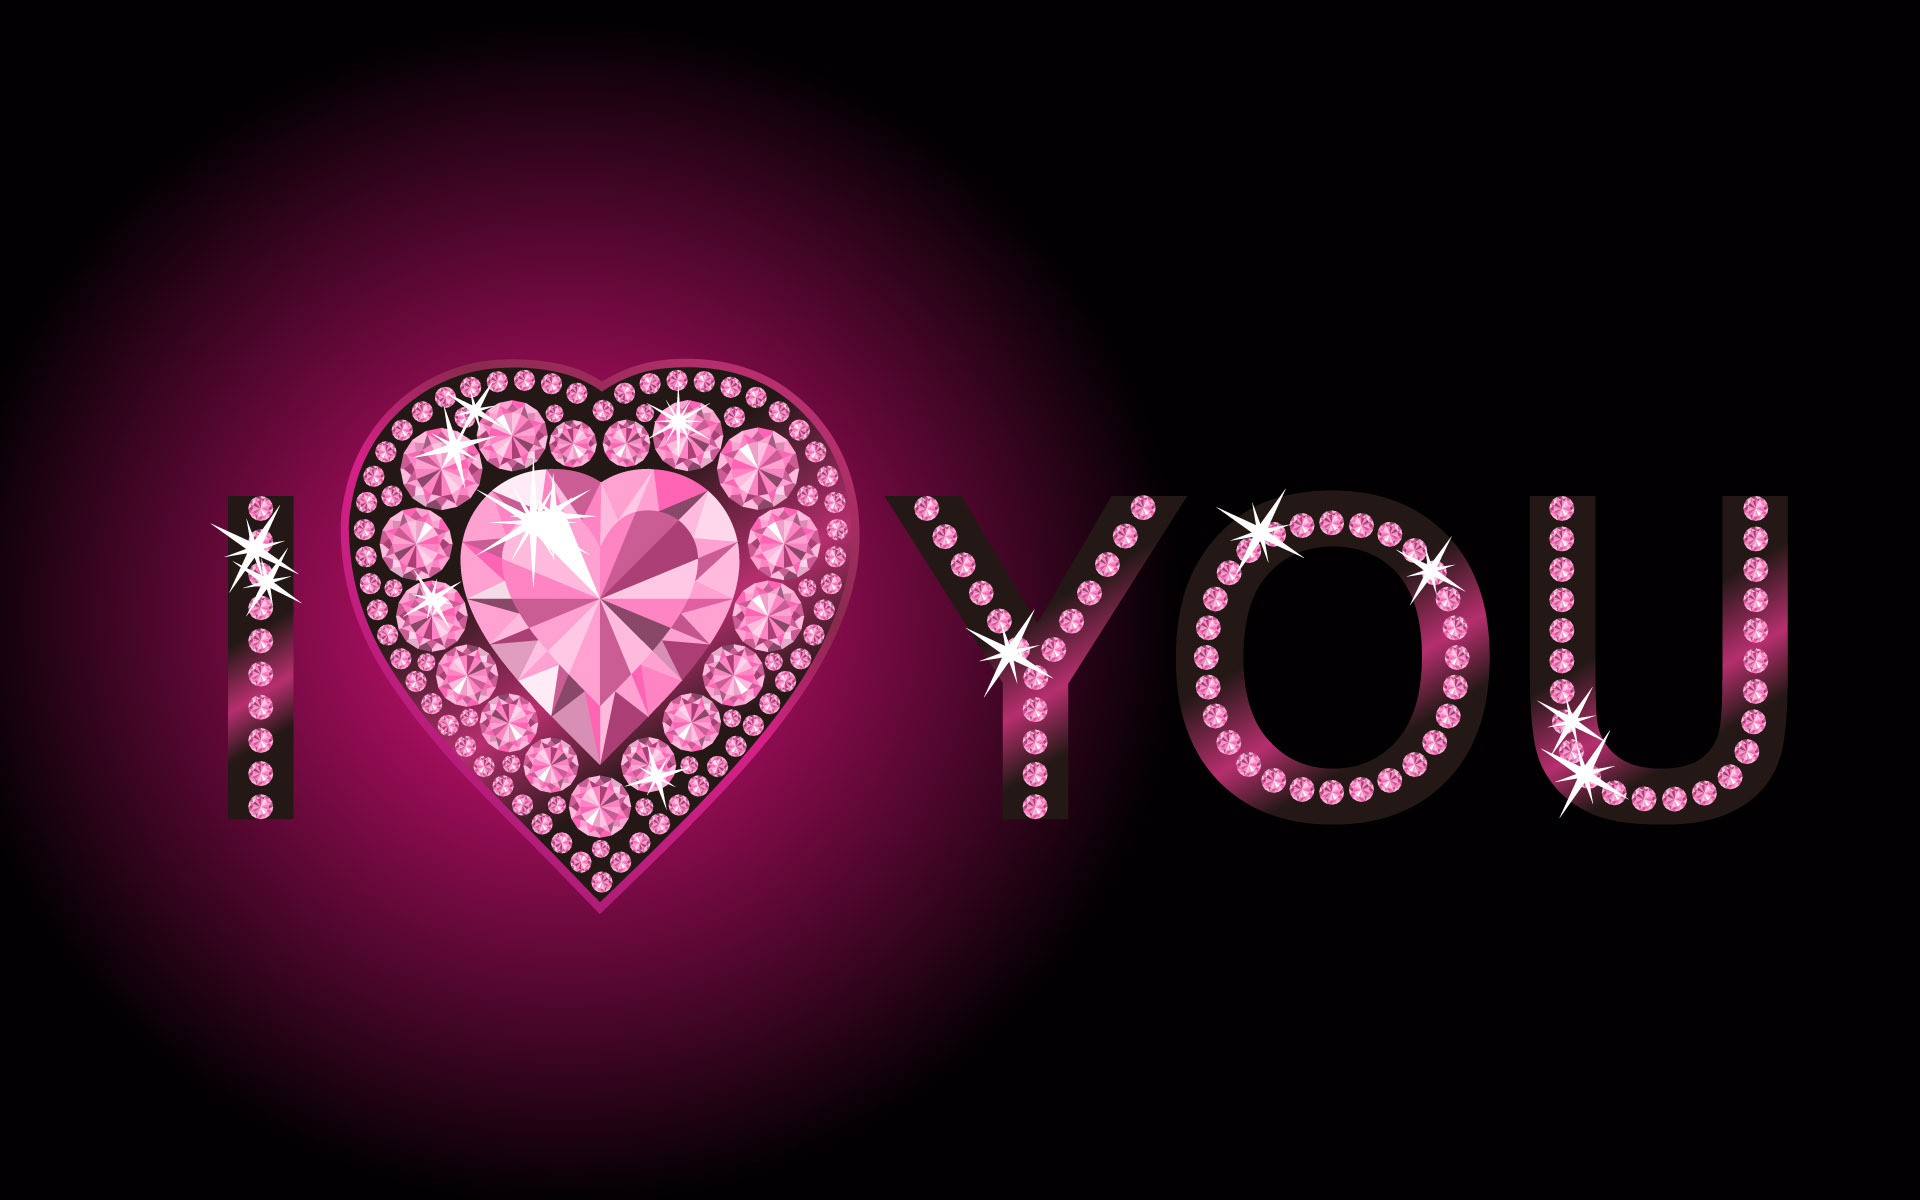 Desktop Wallpaper Related Love : I Love You Desktop Wallpaper - Wallpaper, High Definition, High Quality, Widescreen